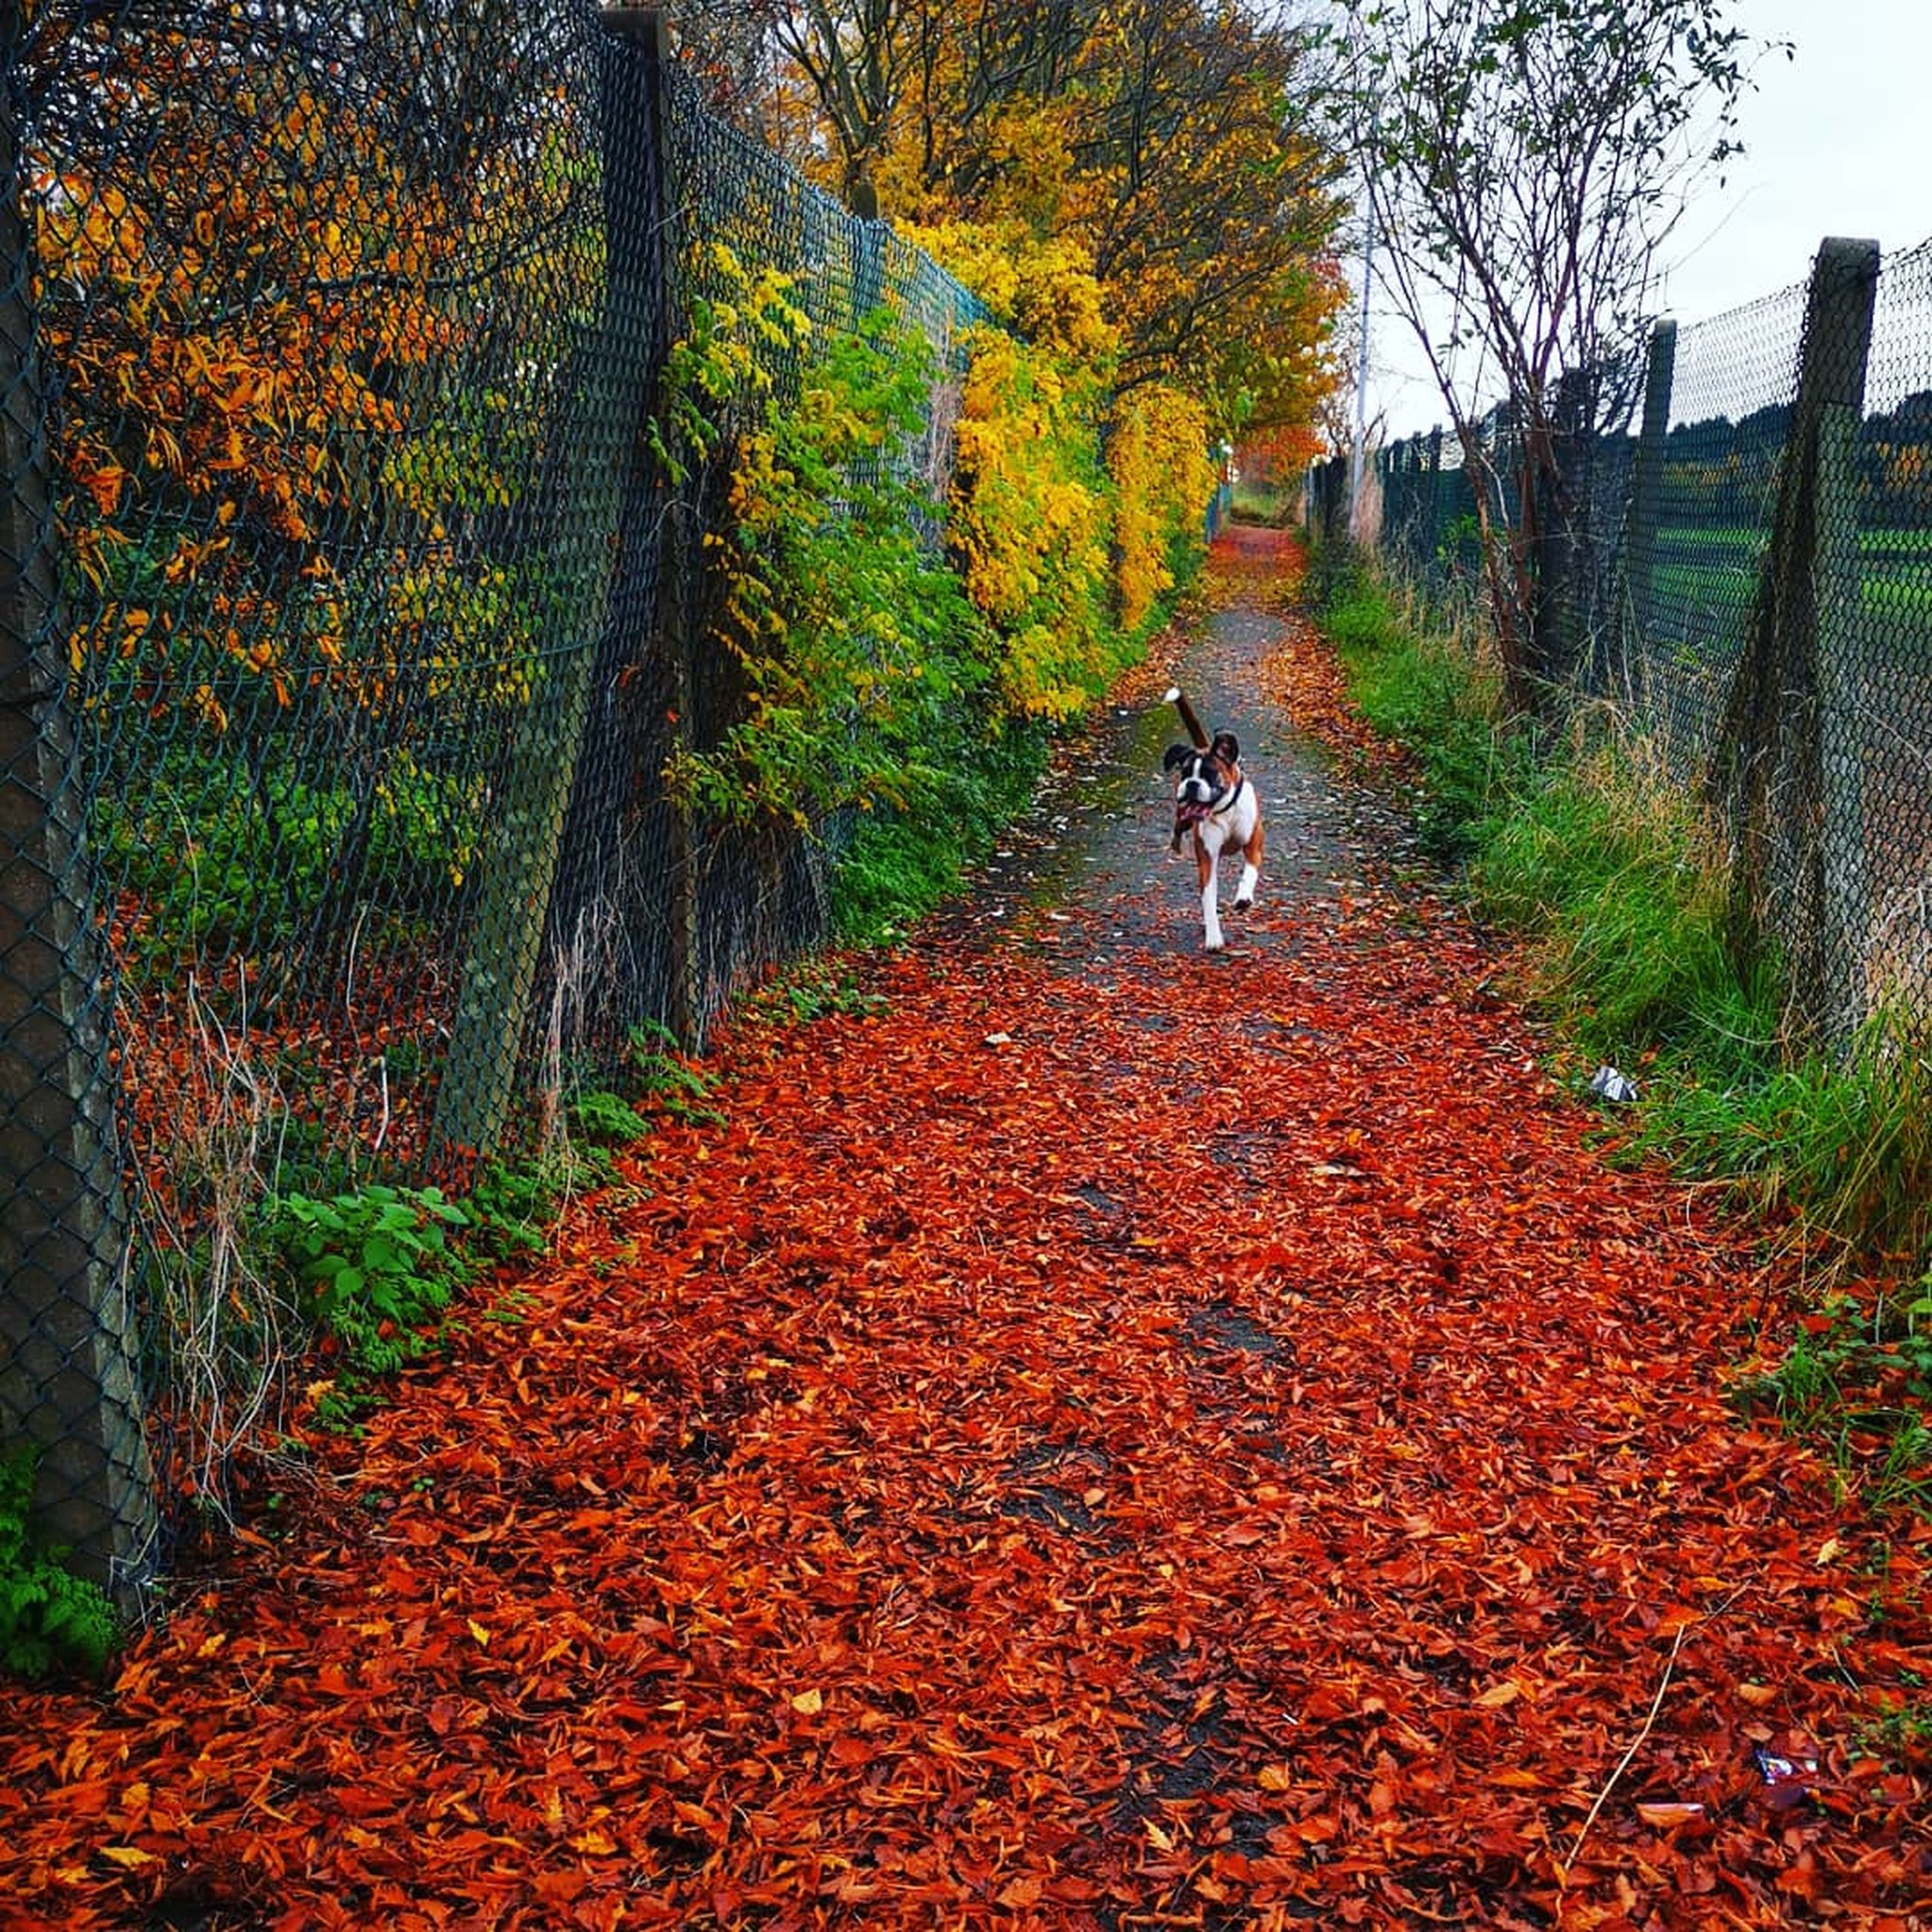 autumn, mammal, tree, domestic animals, domestic, pets, animal themes, animal, canine, dog, one animal, plant, change, vertebrate, plant part, leaf, nature, land, footpath, day, outdoors, pet owner, autumn collection